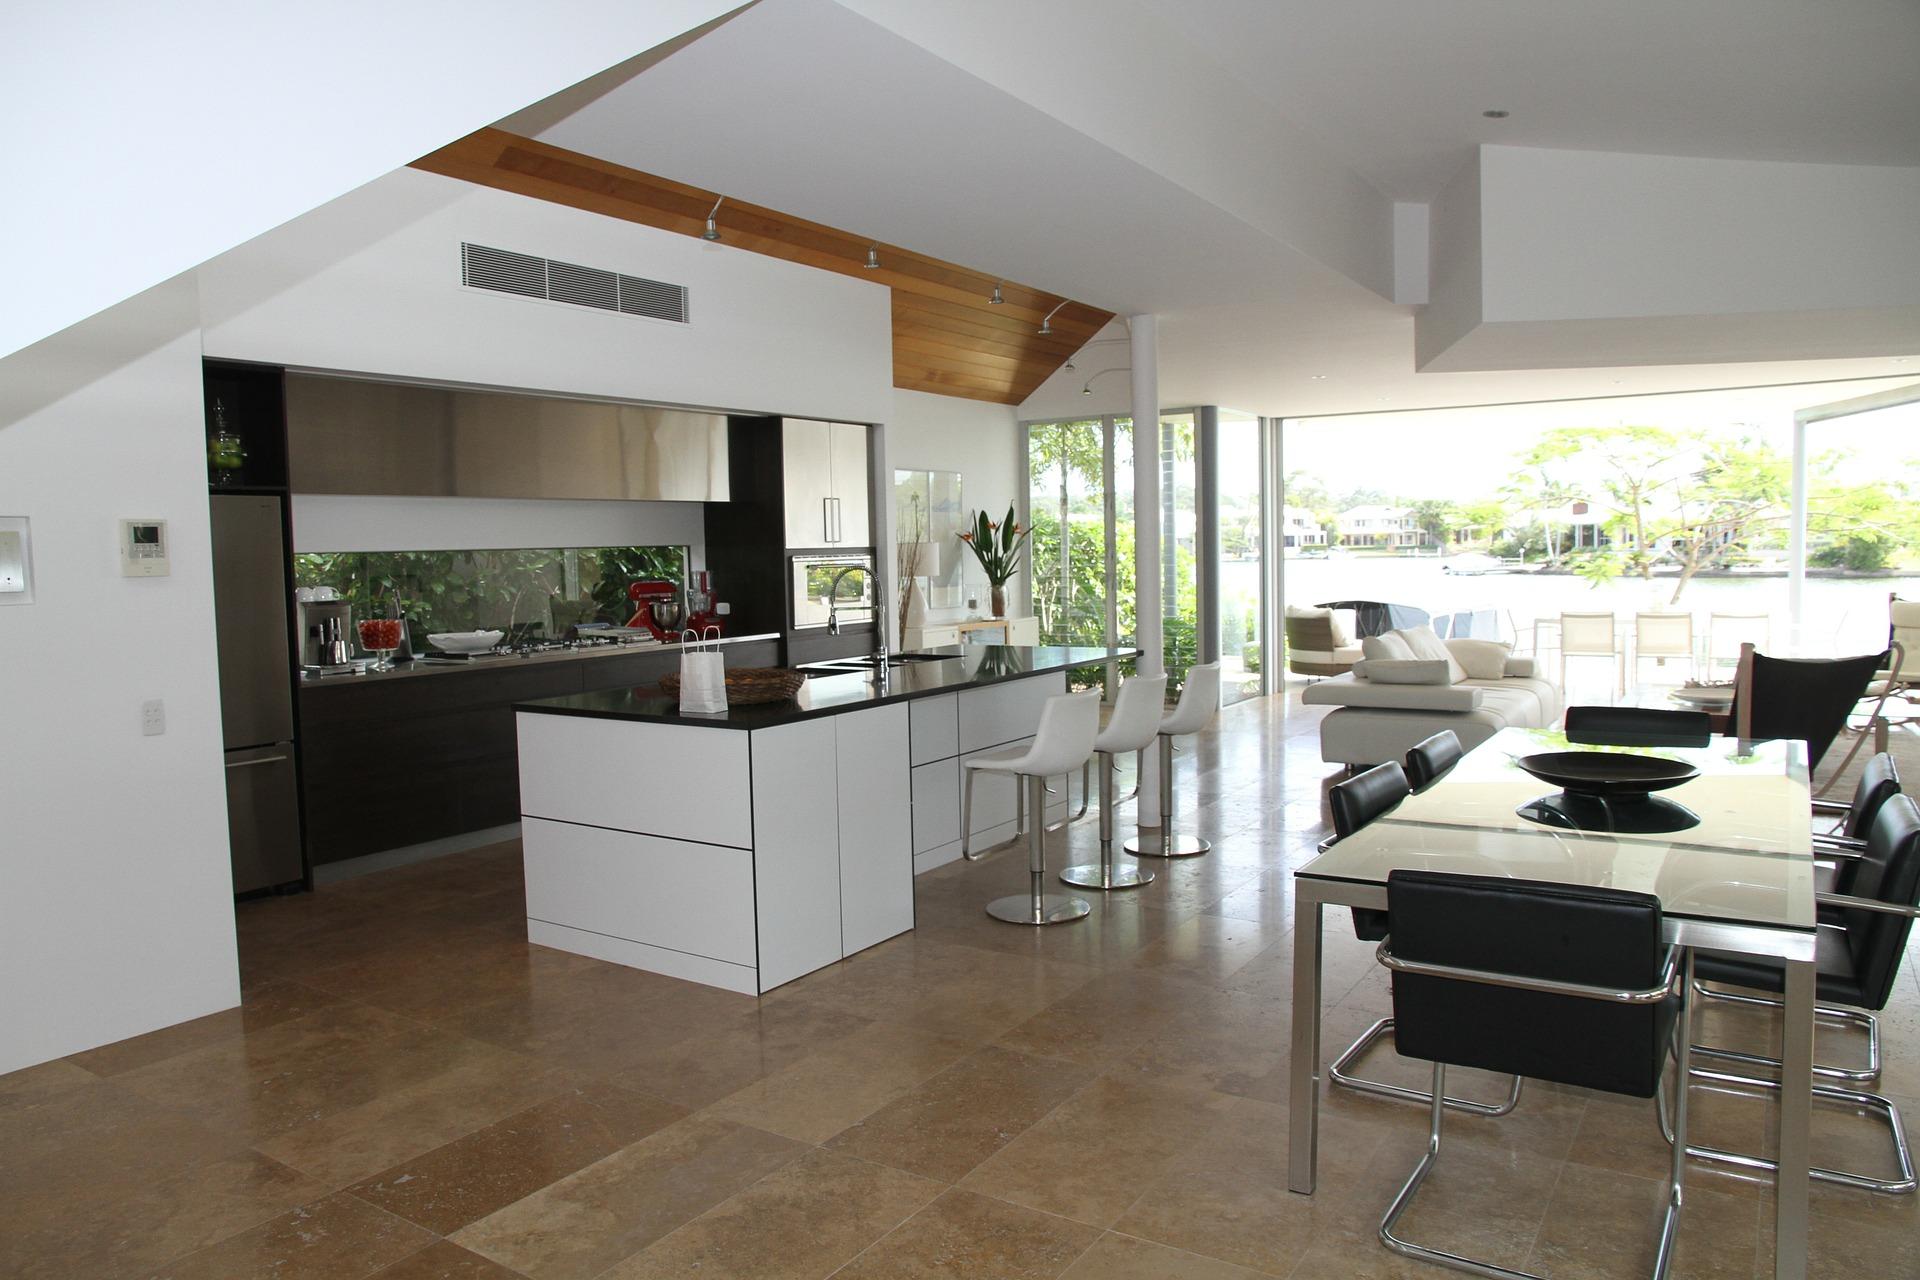 modern kitchen with white laminate cabinetry and black granite counter tops